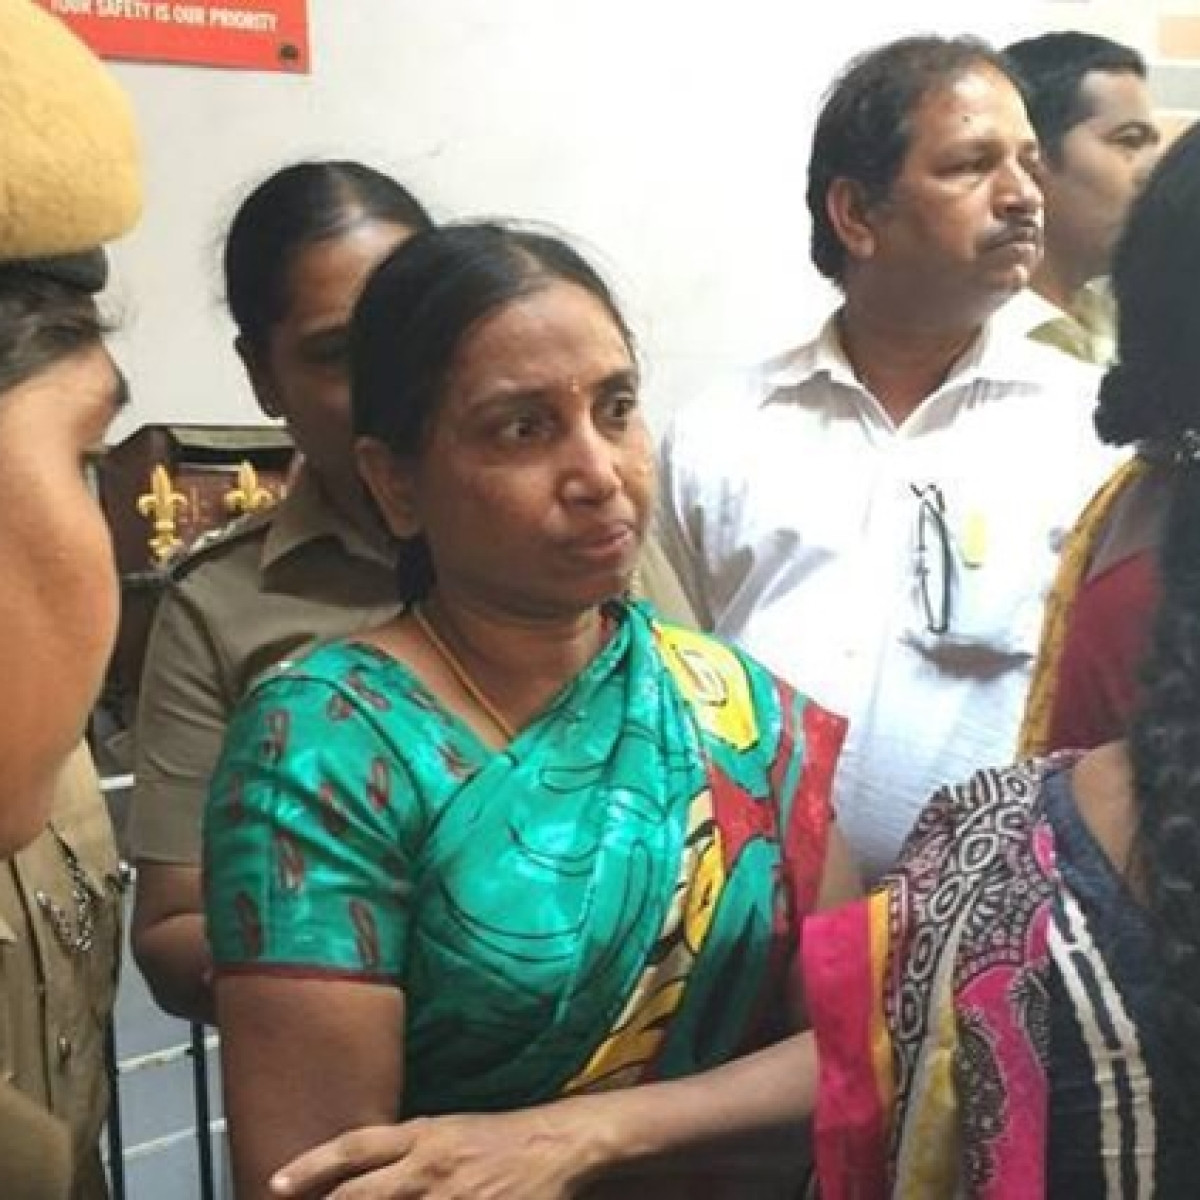 Rajiv Gandhi assassination case convict Nalini Sriharan goes on hunger strike demanding release